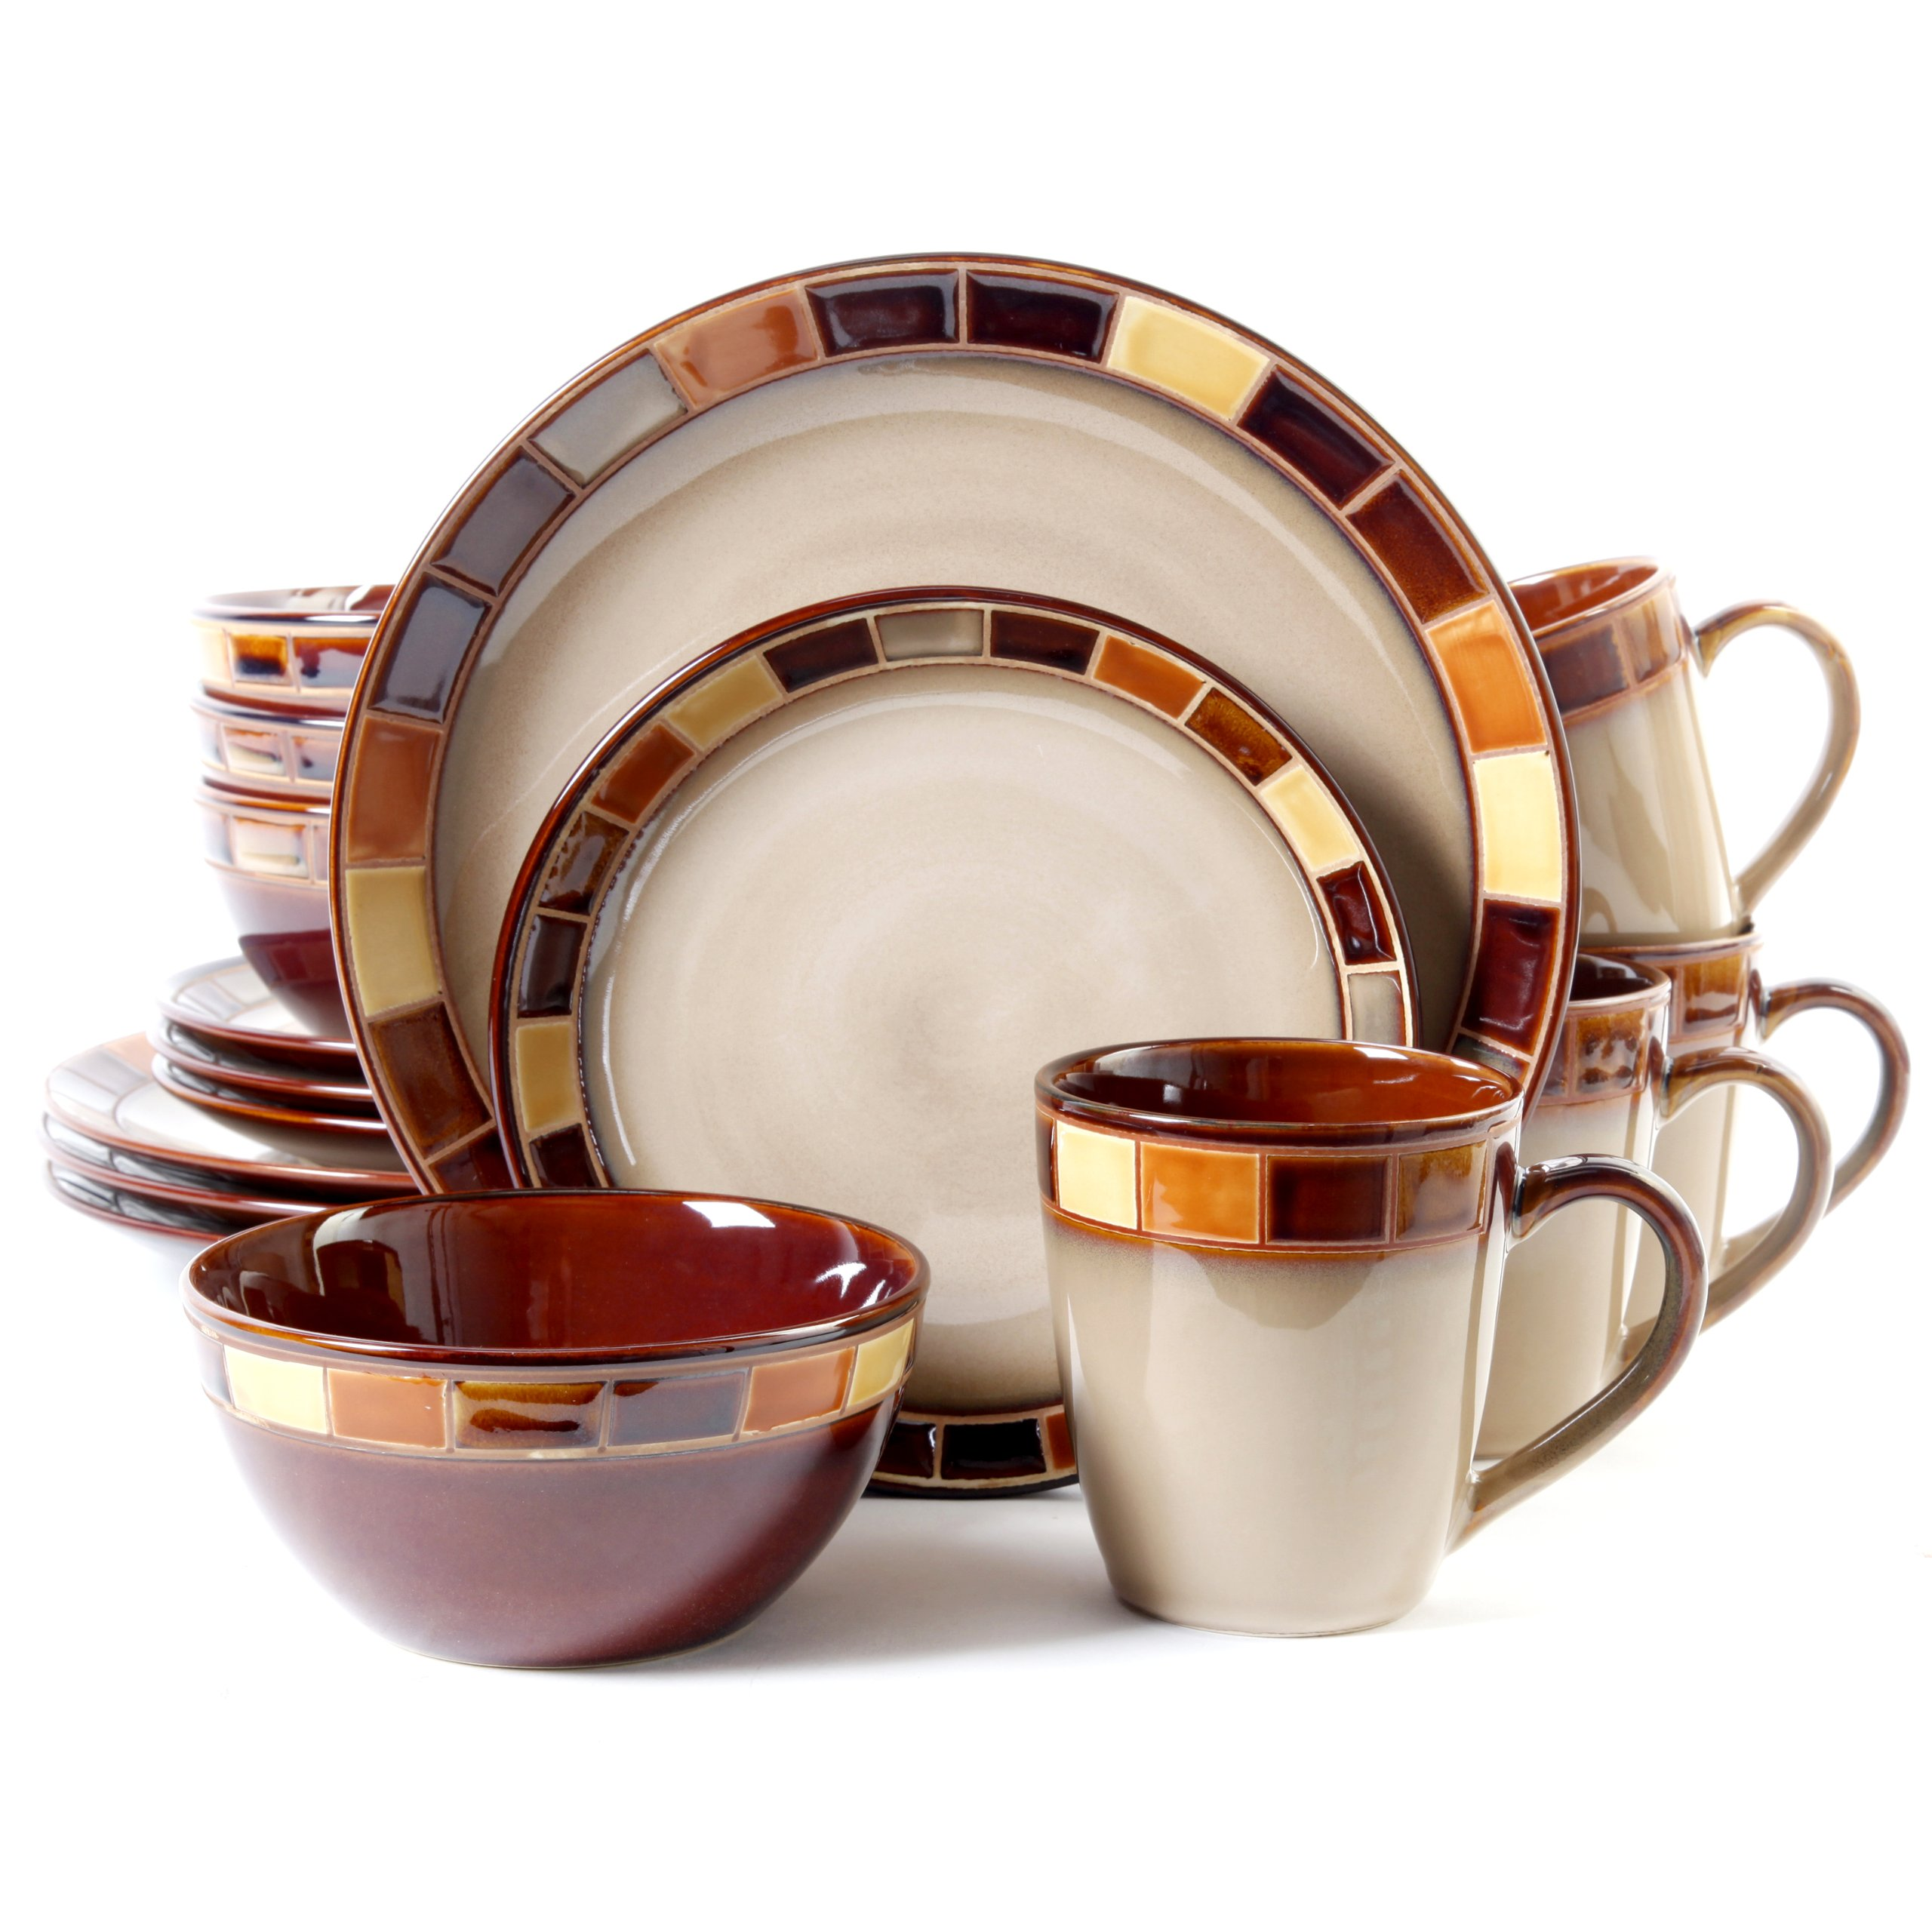 Gibson Casa Estebana 16-piece Dinnerware Set Service for 4, Beige and Brown by Gibson (Image #1)